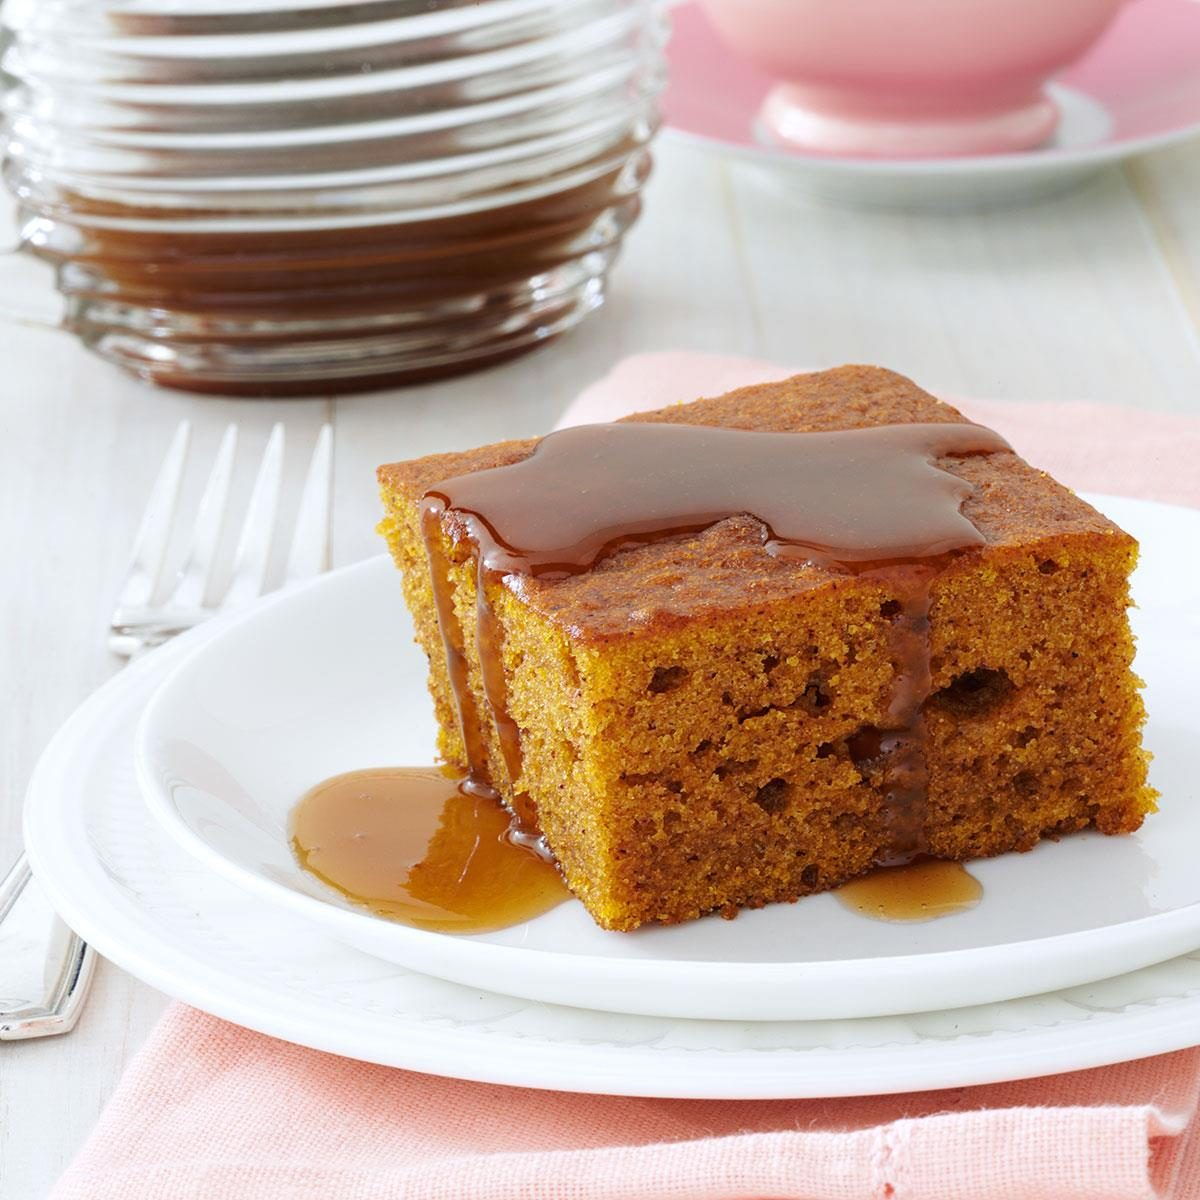 Taste Of Home Ginger Cake And Sauce